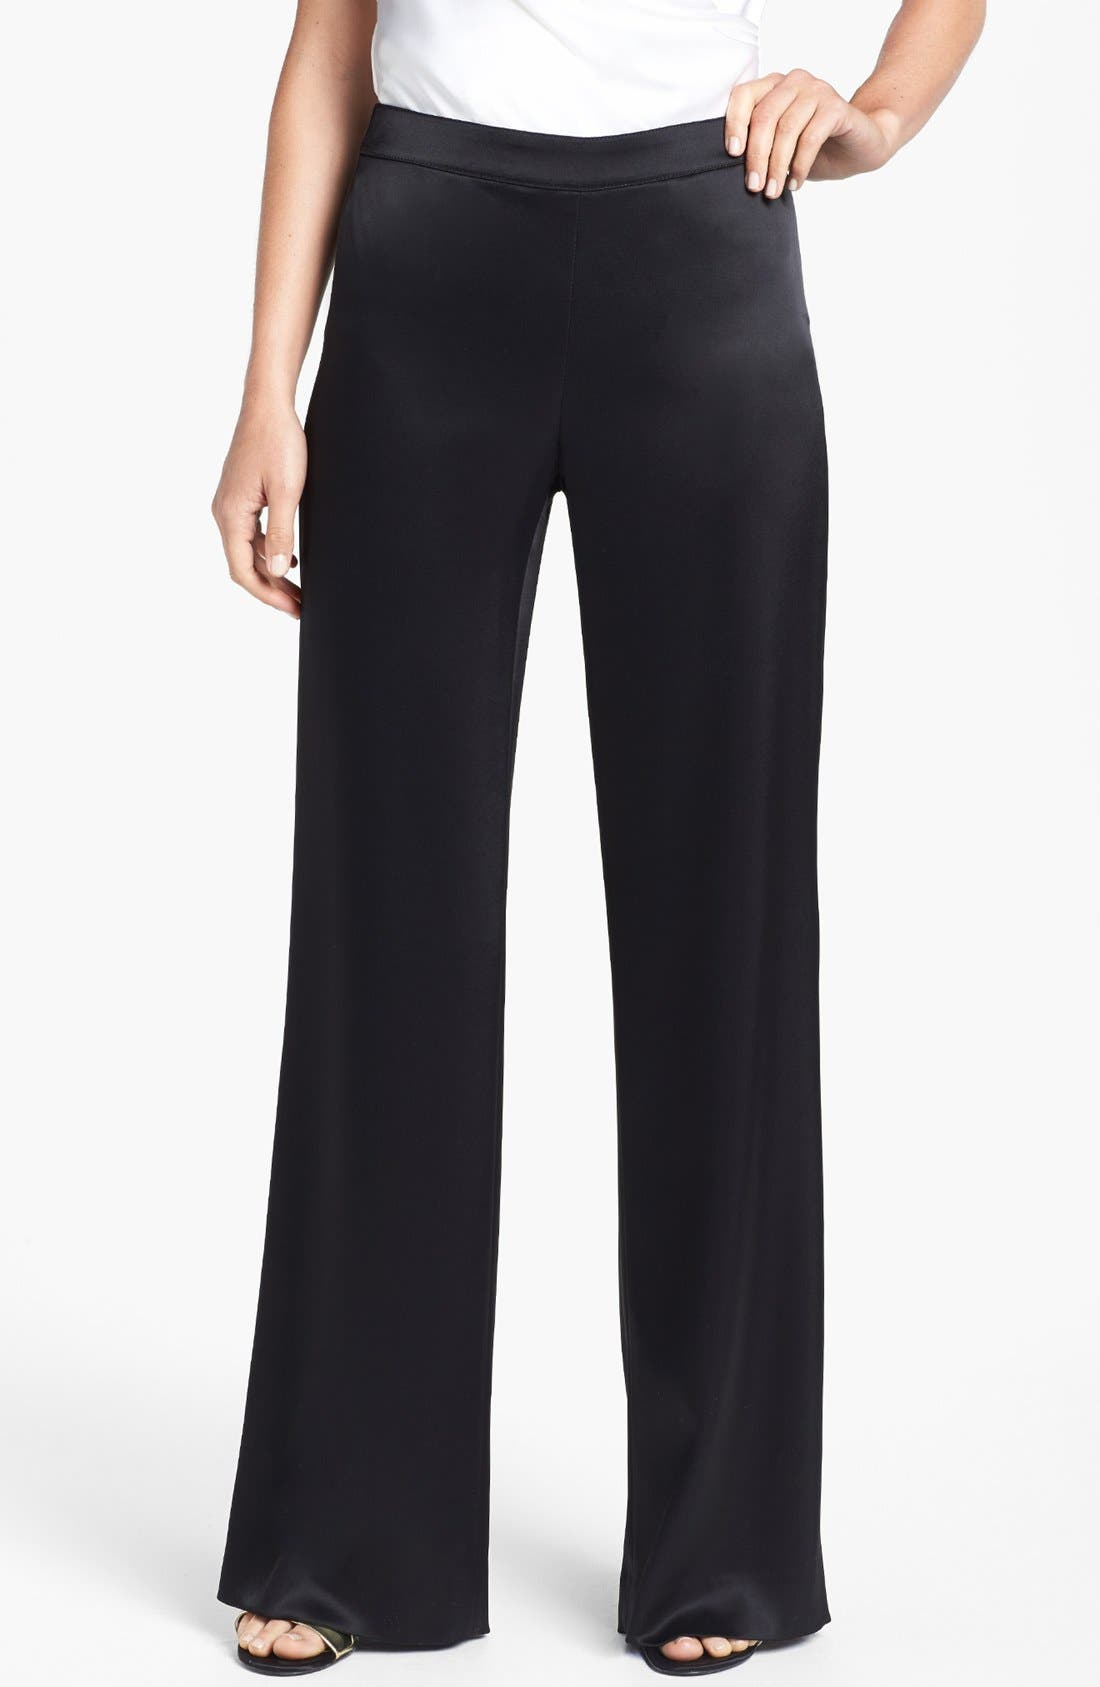 Alternate Image 1 Selected - St. John Collection 'Diana' Wide Leg Liquid Satin Pants